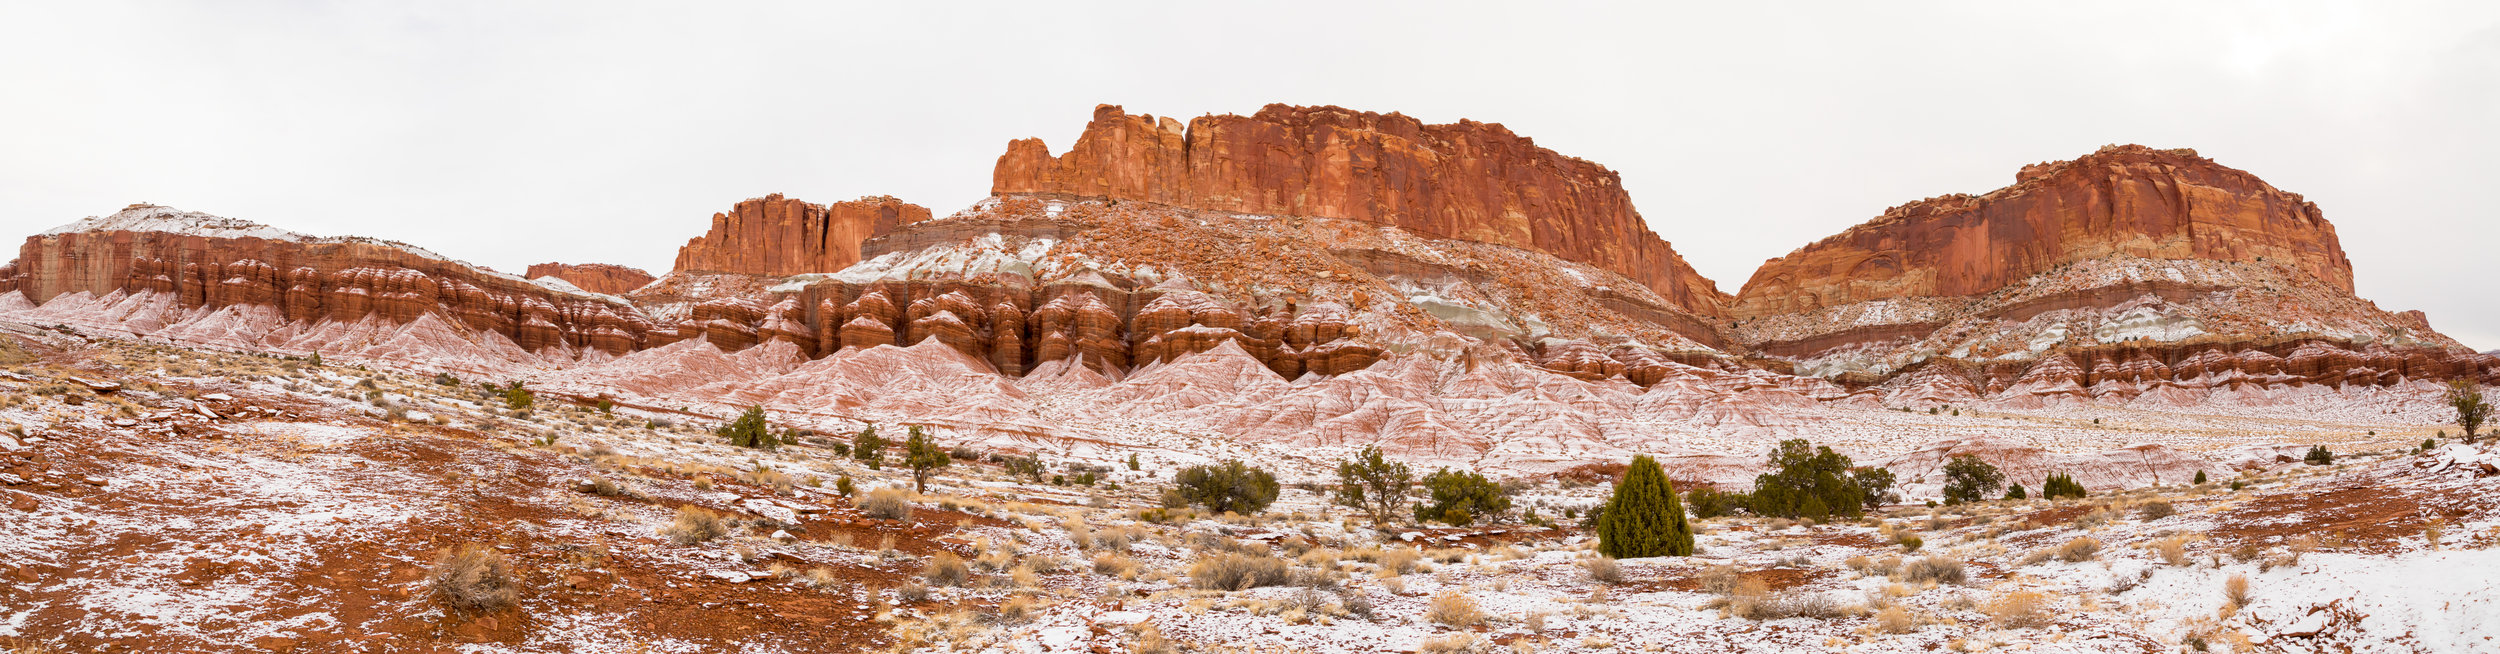 CAPITOL REEF NATIONAL PARK, IMAGE # 2336